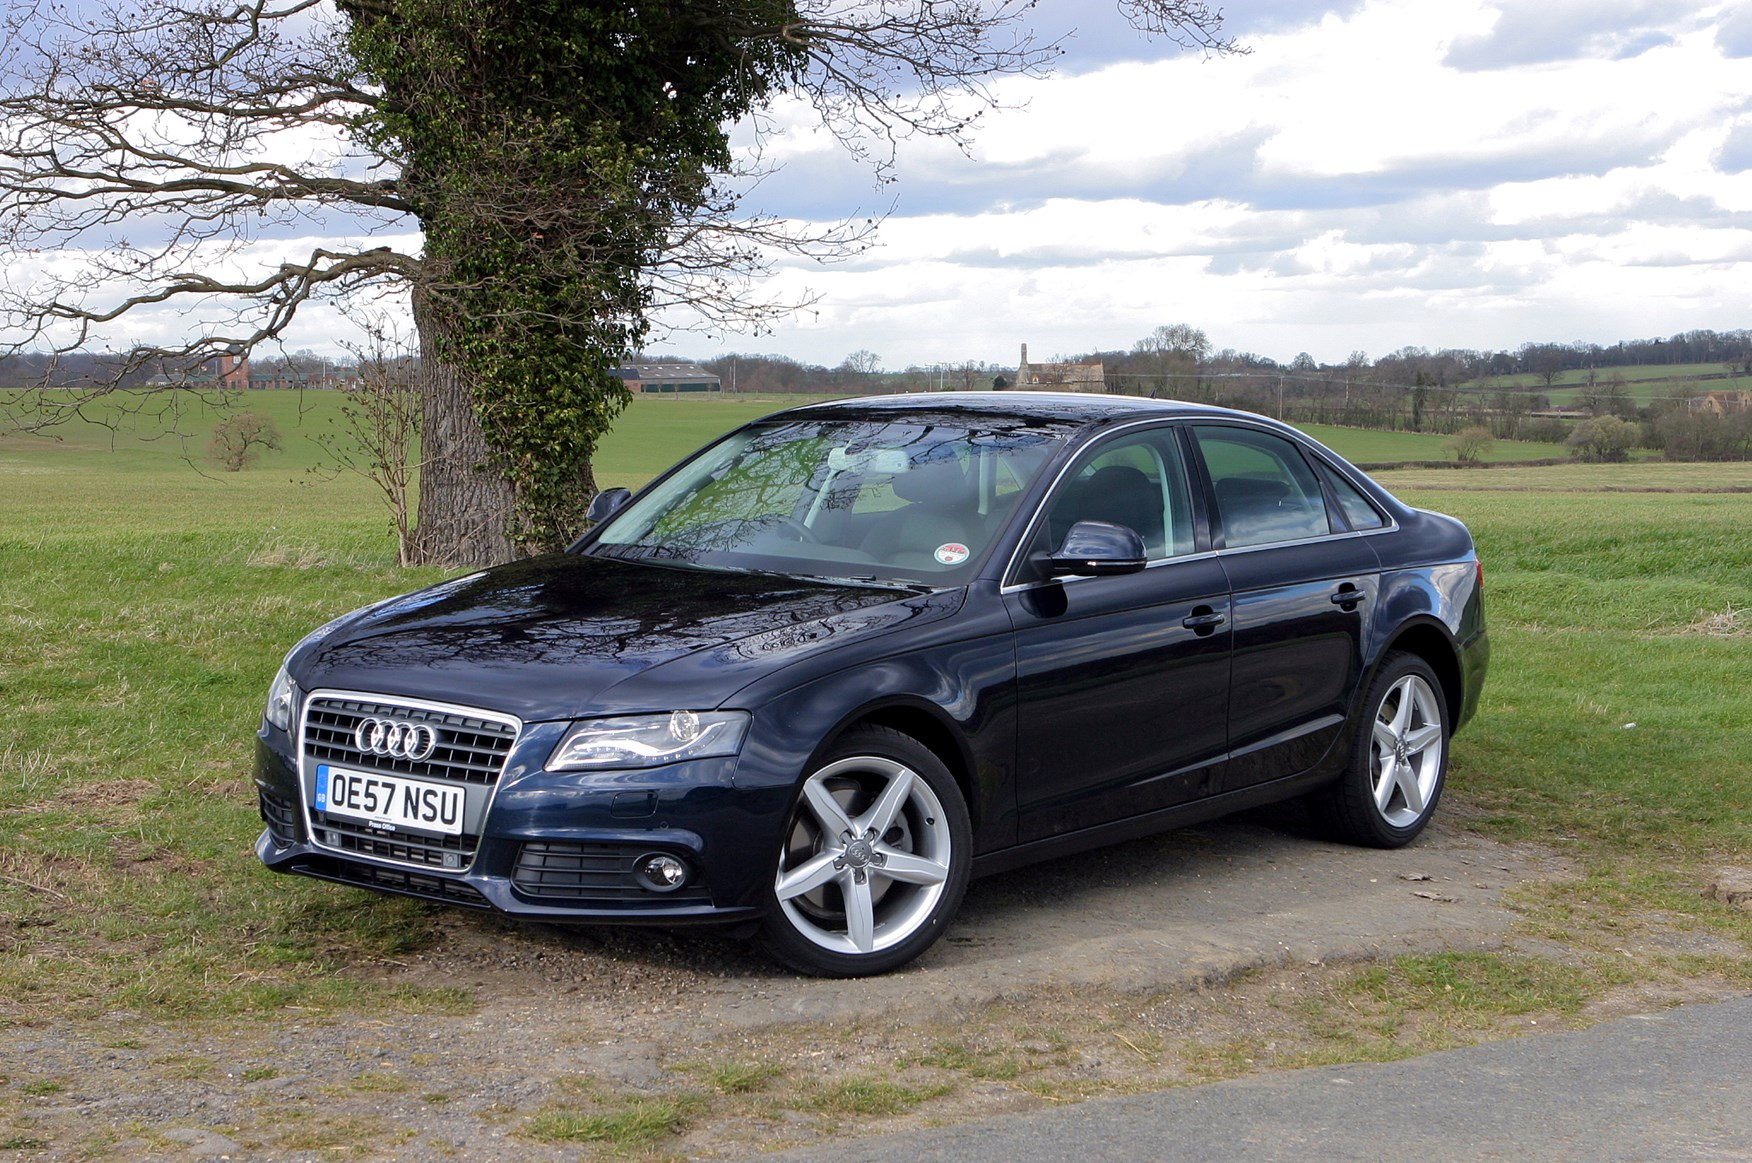 50 Best Used Audi S5 for Sale Savings from 3099